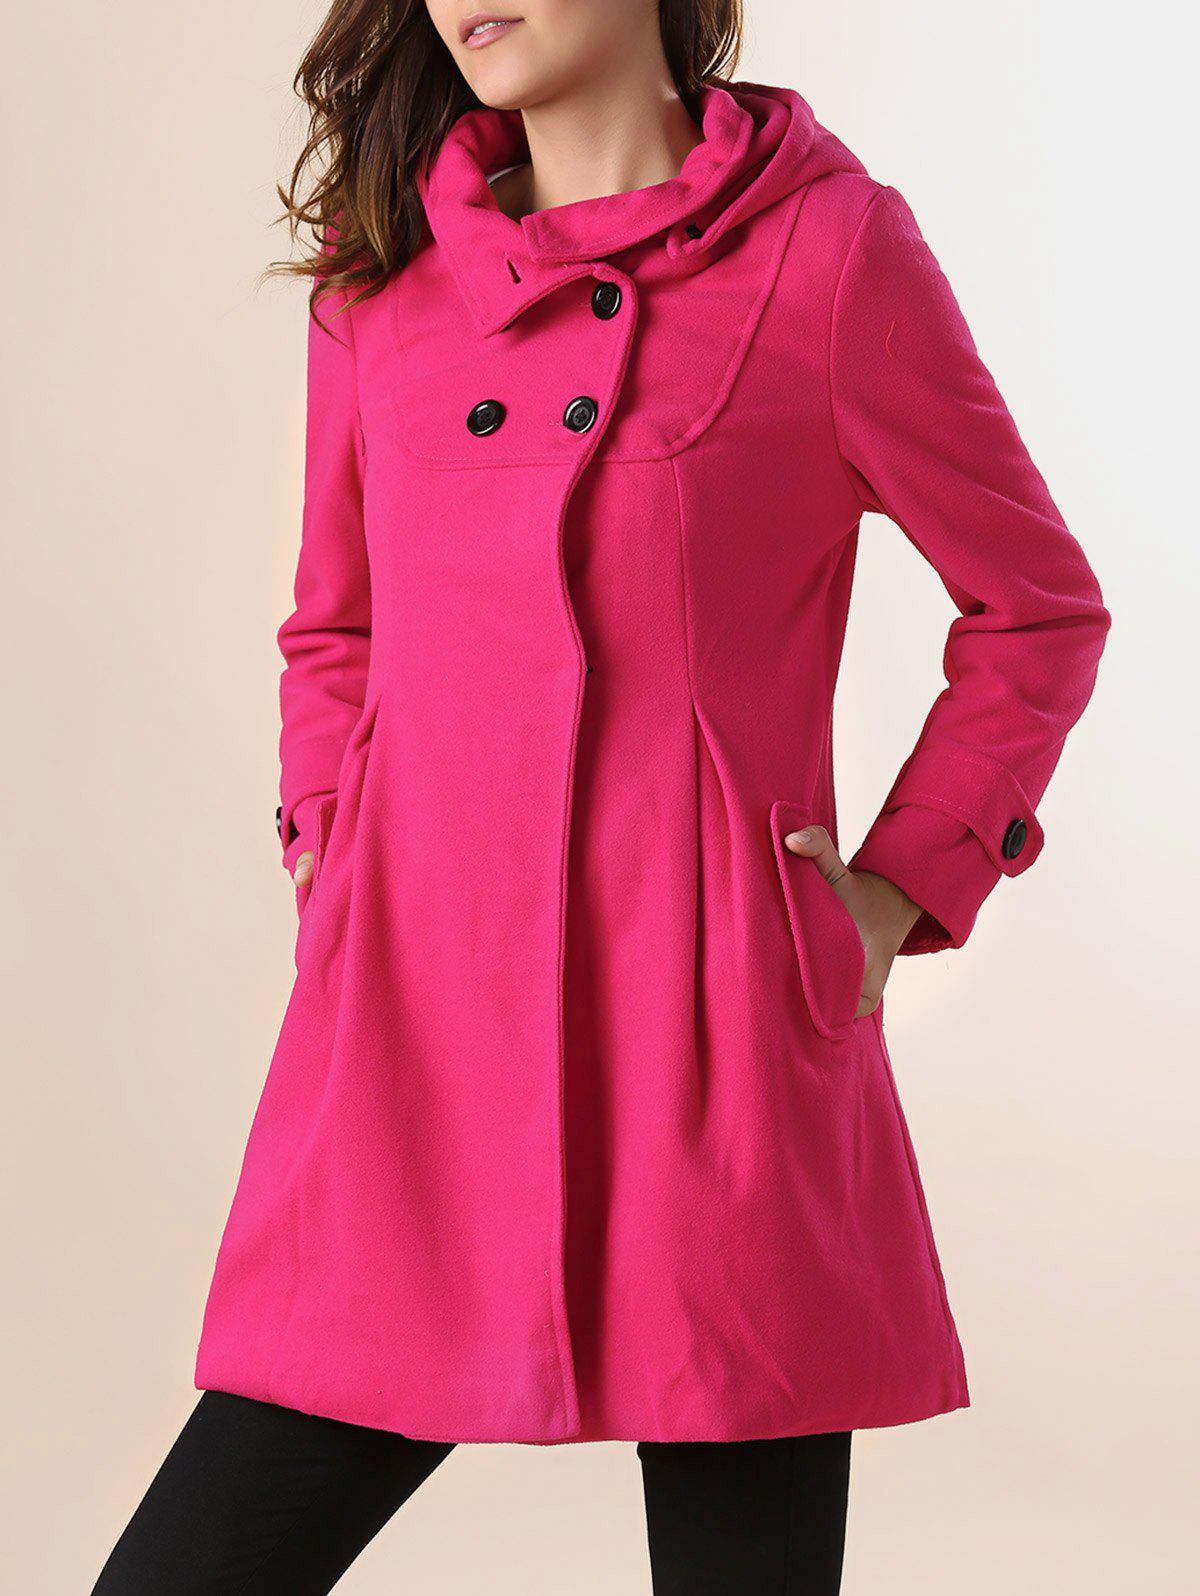 Stylish Hooded Collar Solid Color Double-Breasted Long Sleeve Woolen Coat For Women